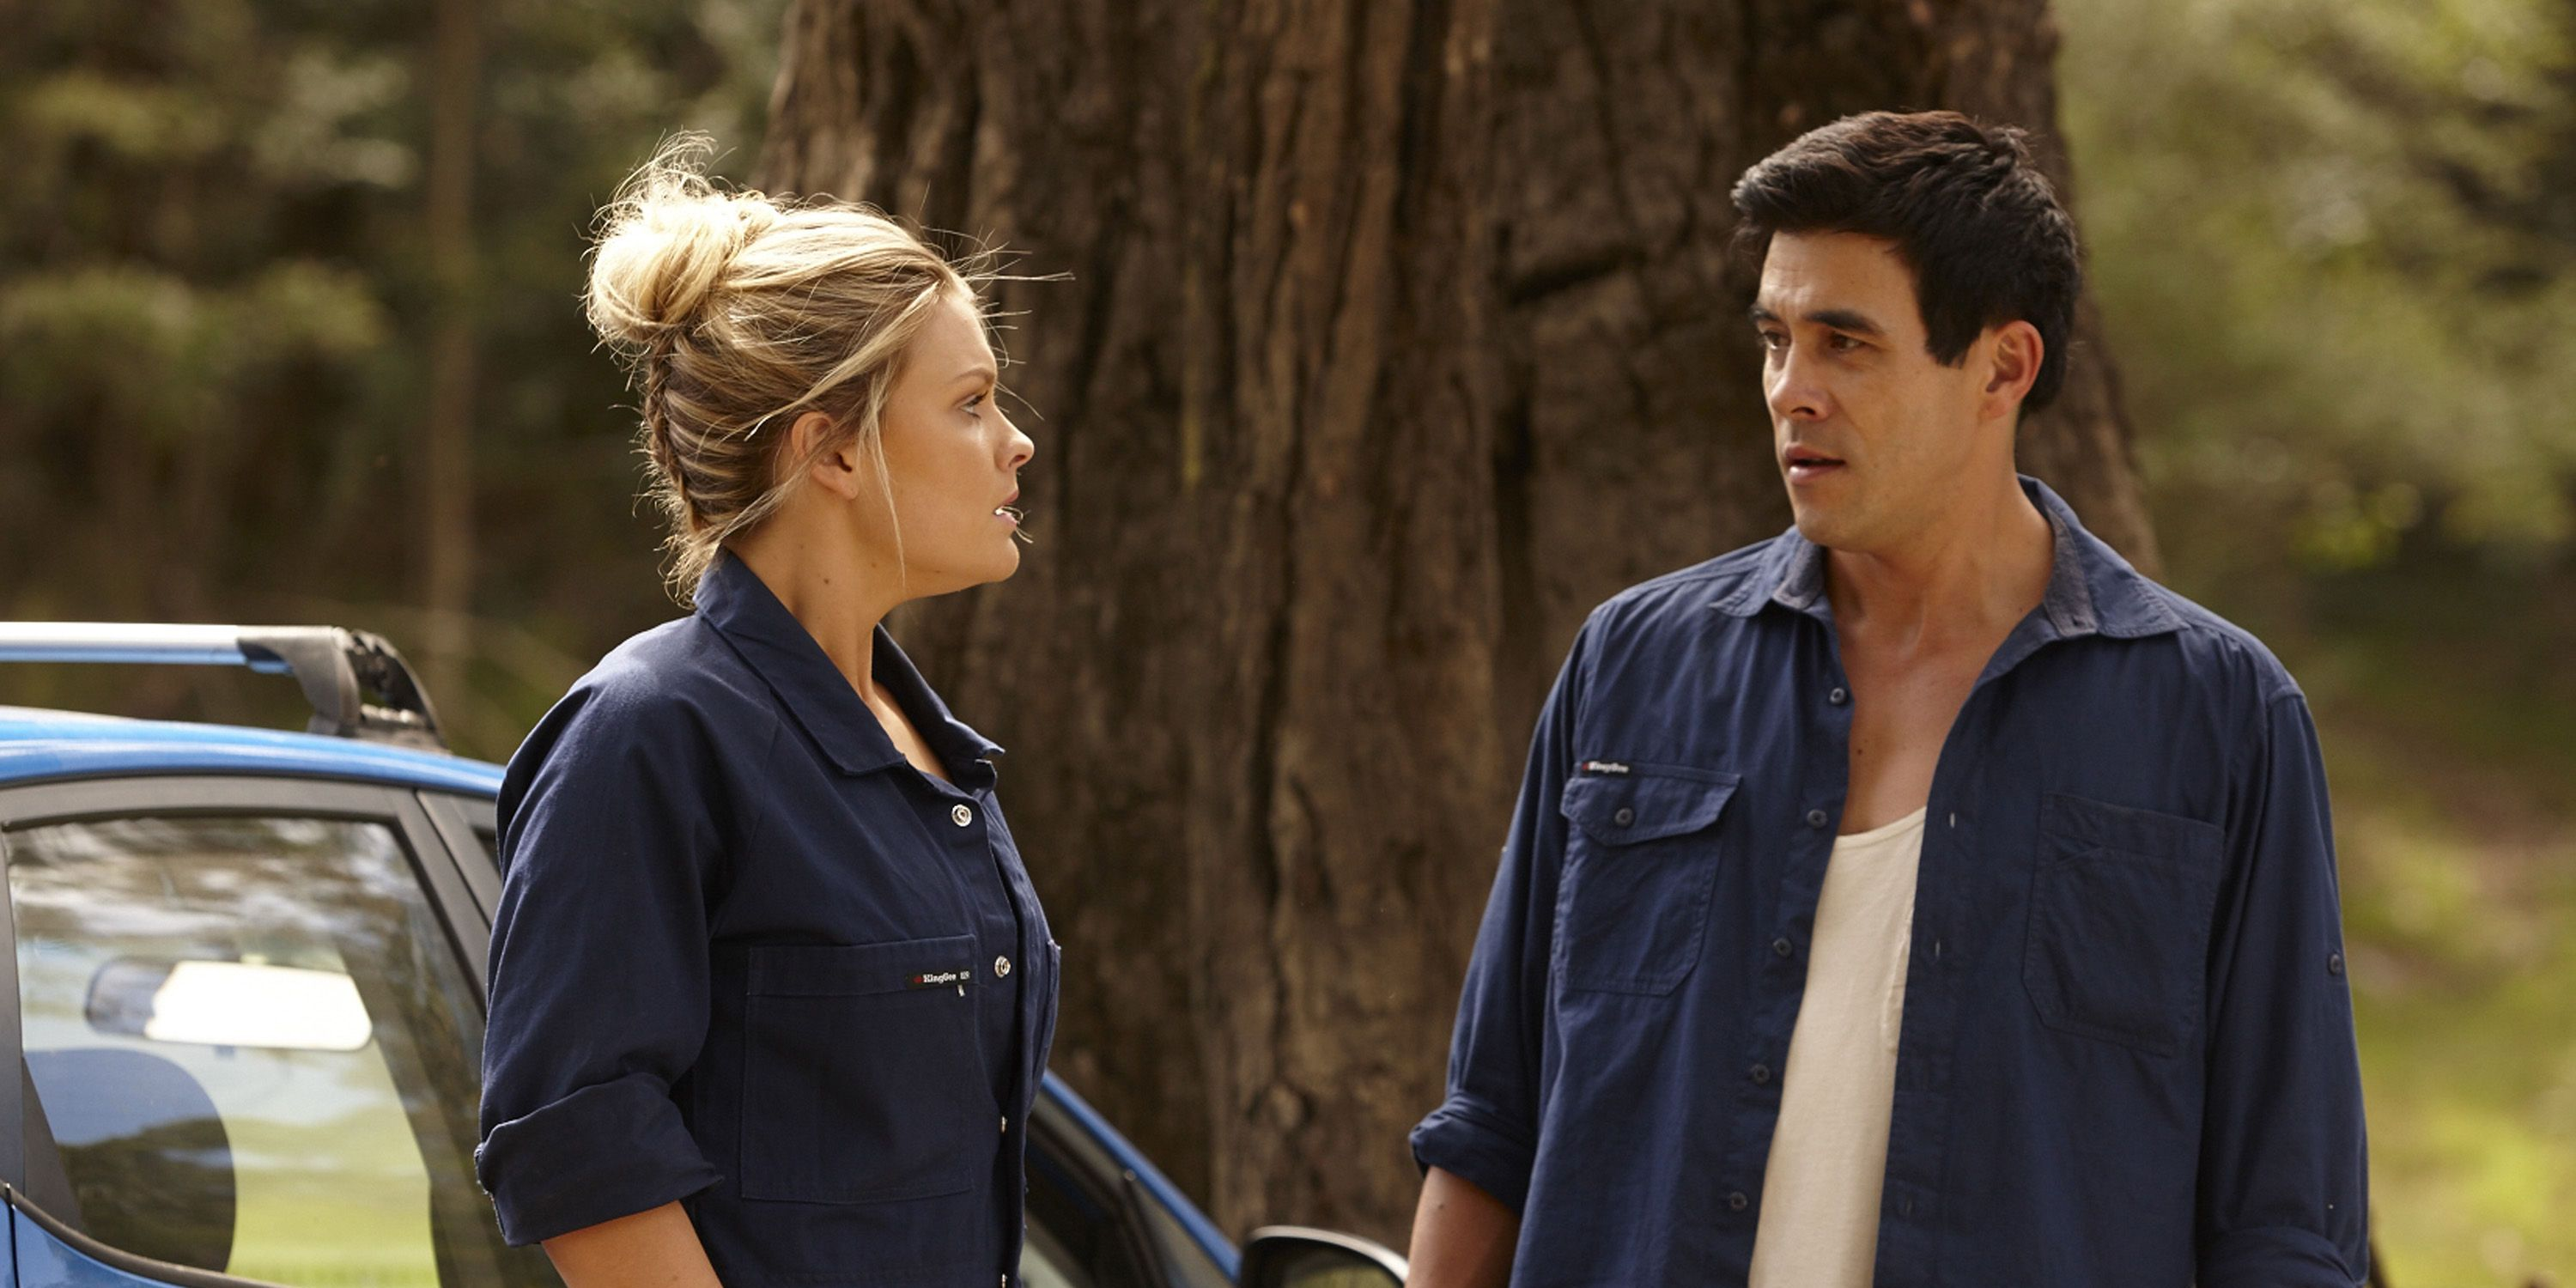 Ziggy Astoni and Justin Morgan at the accident scene in Home and Away